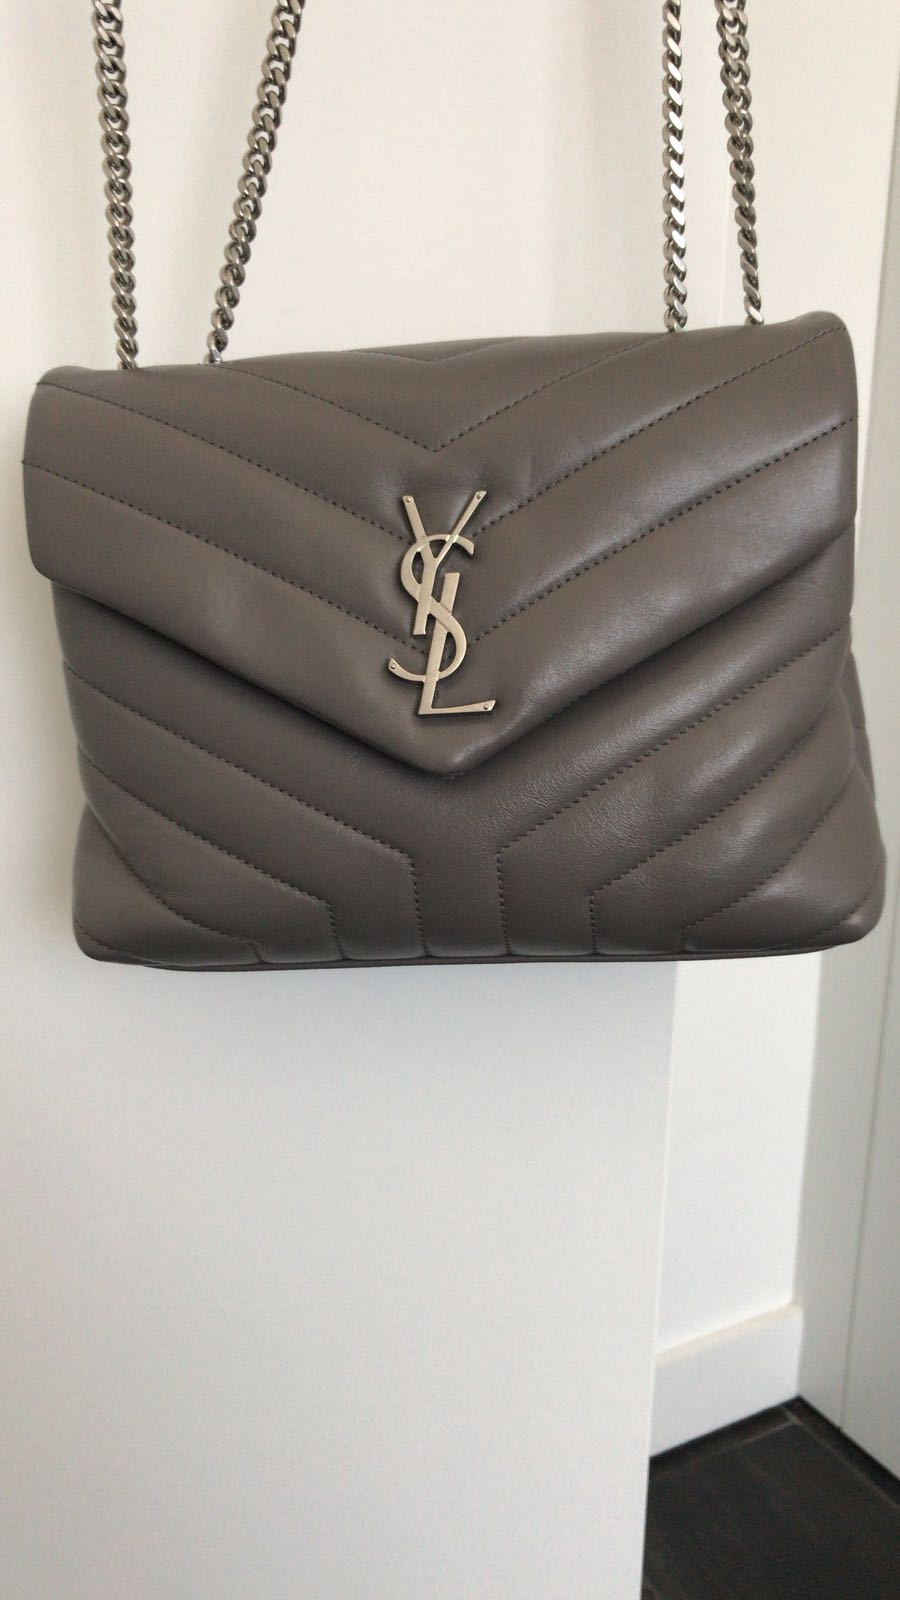 Saint Laurent Loulou Medium - Iconics Preloved Luxury